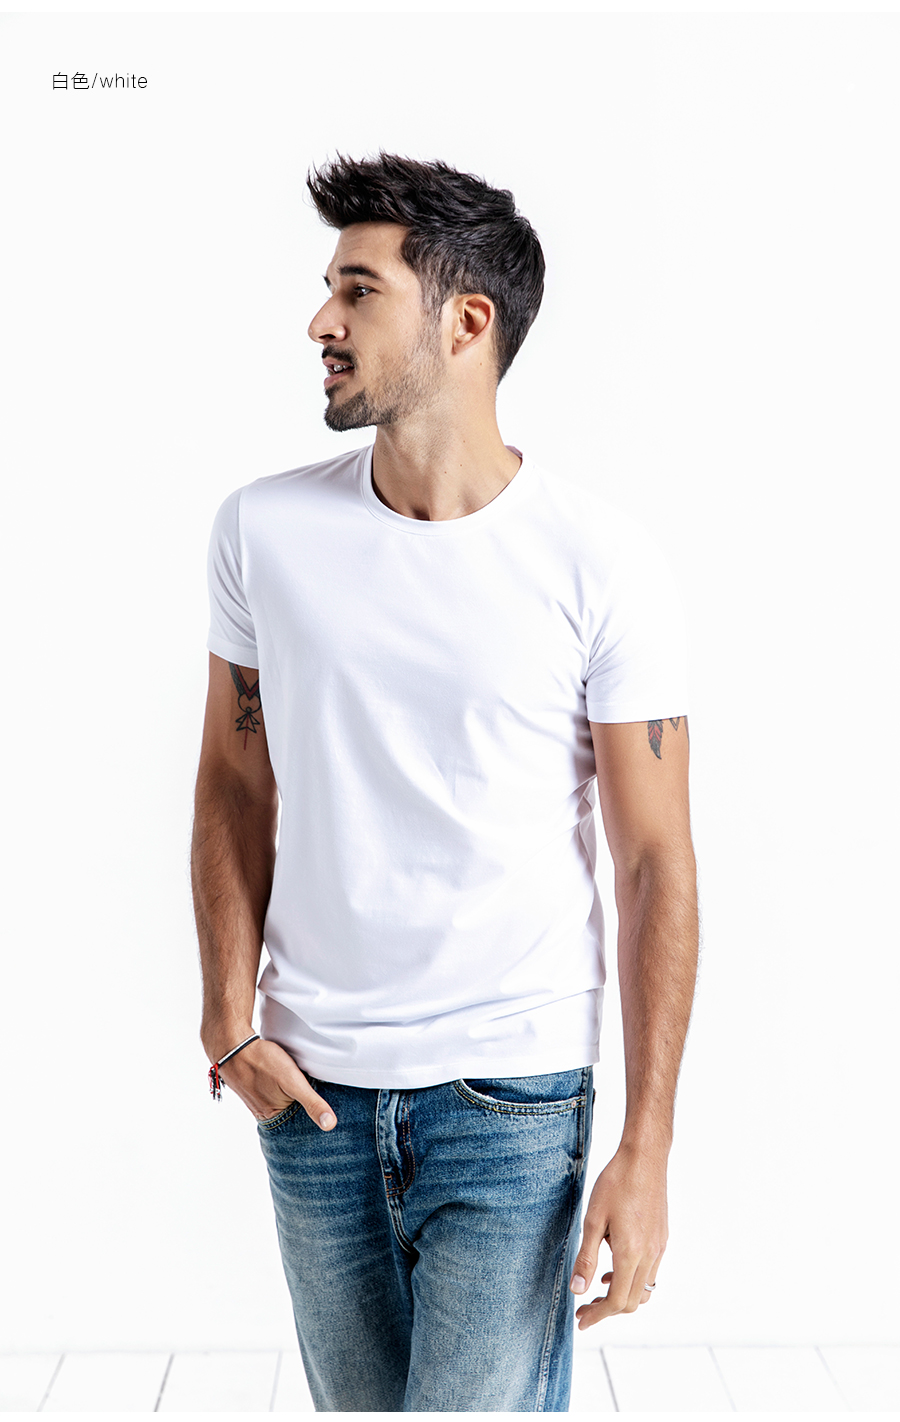 SIMWOOD 2019 Summer New Solid Basic t shirt Men Skinny O-neck Cotton Slim Fit tshirt Male High Quality Breathable Tees 190115